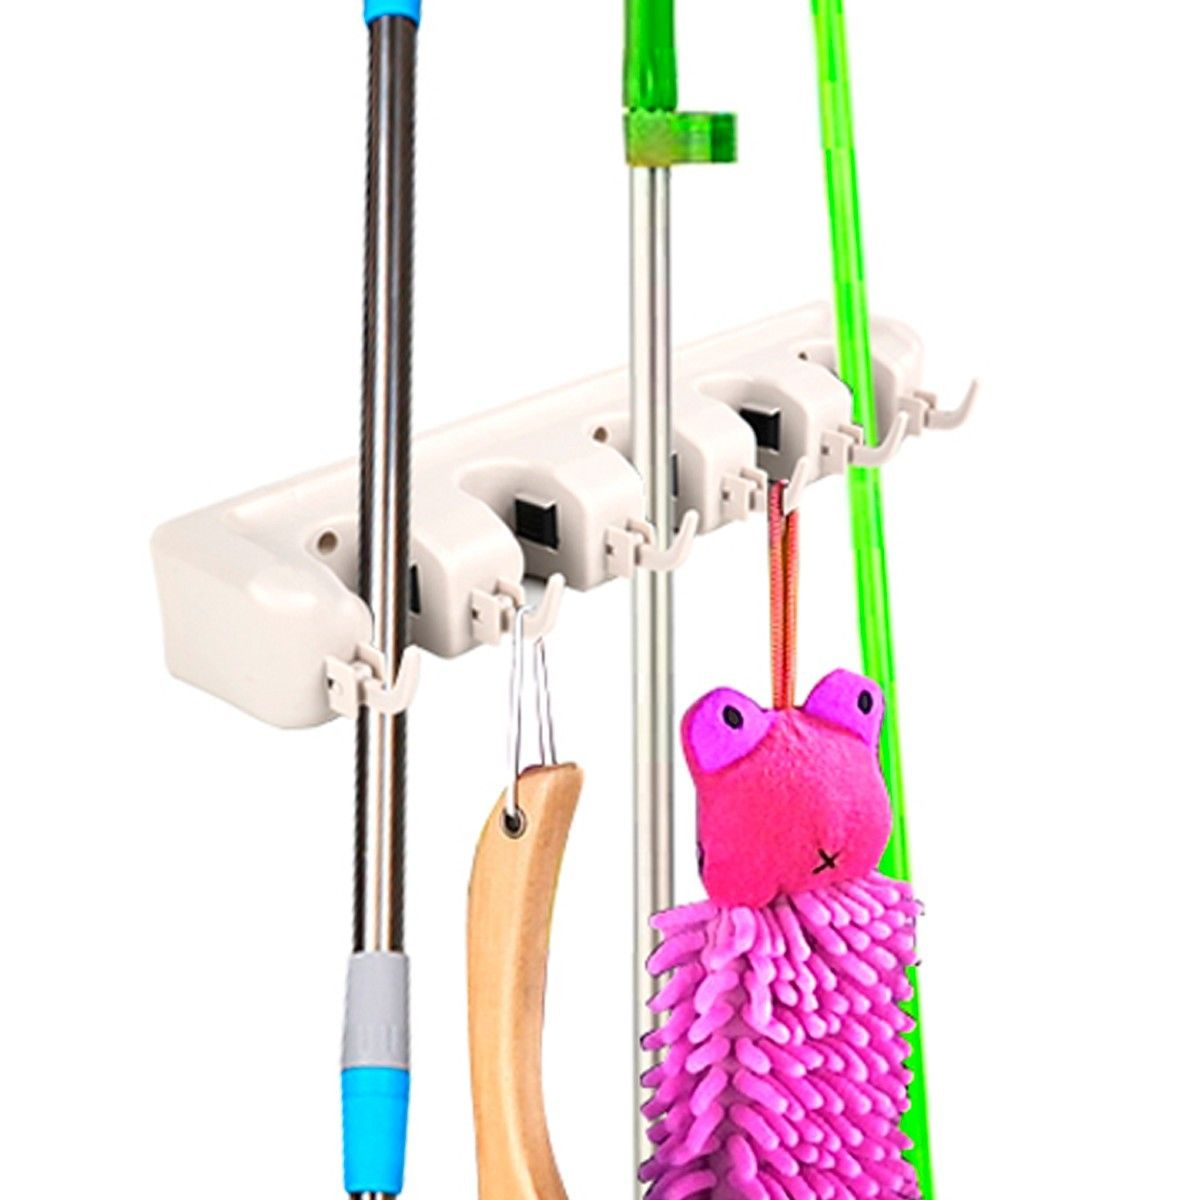 costway mop holder hanger 5 position home kitchen storage broom organizer wall mounted - Broom Holder